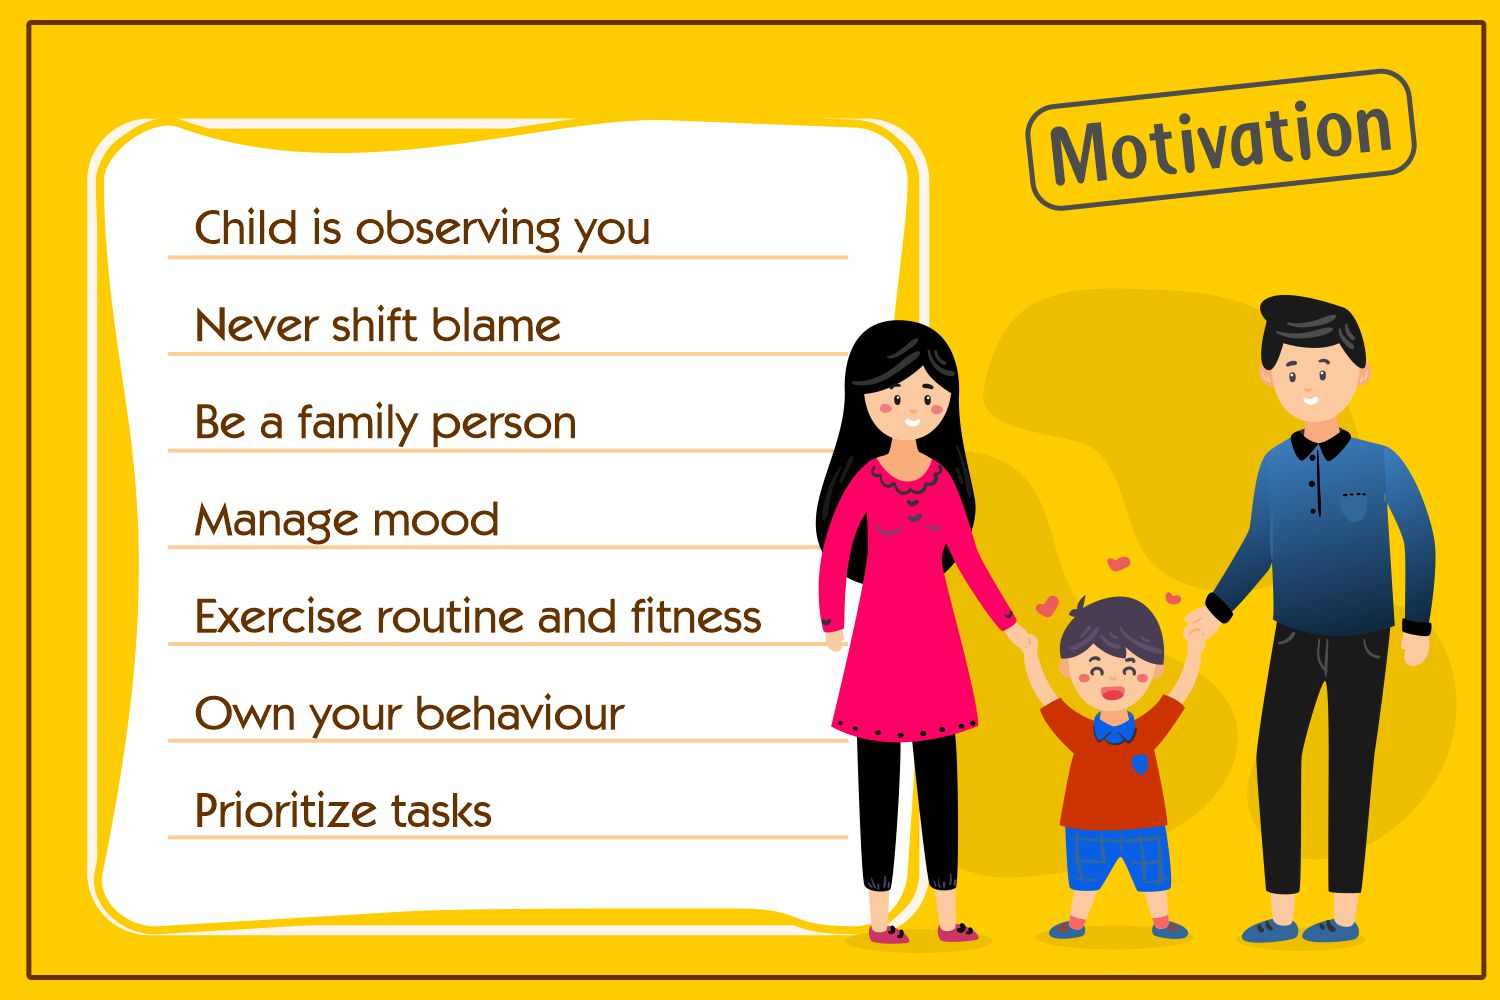 Motivational Things to do by Parents